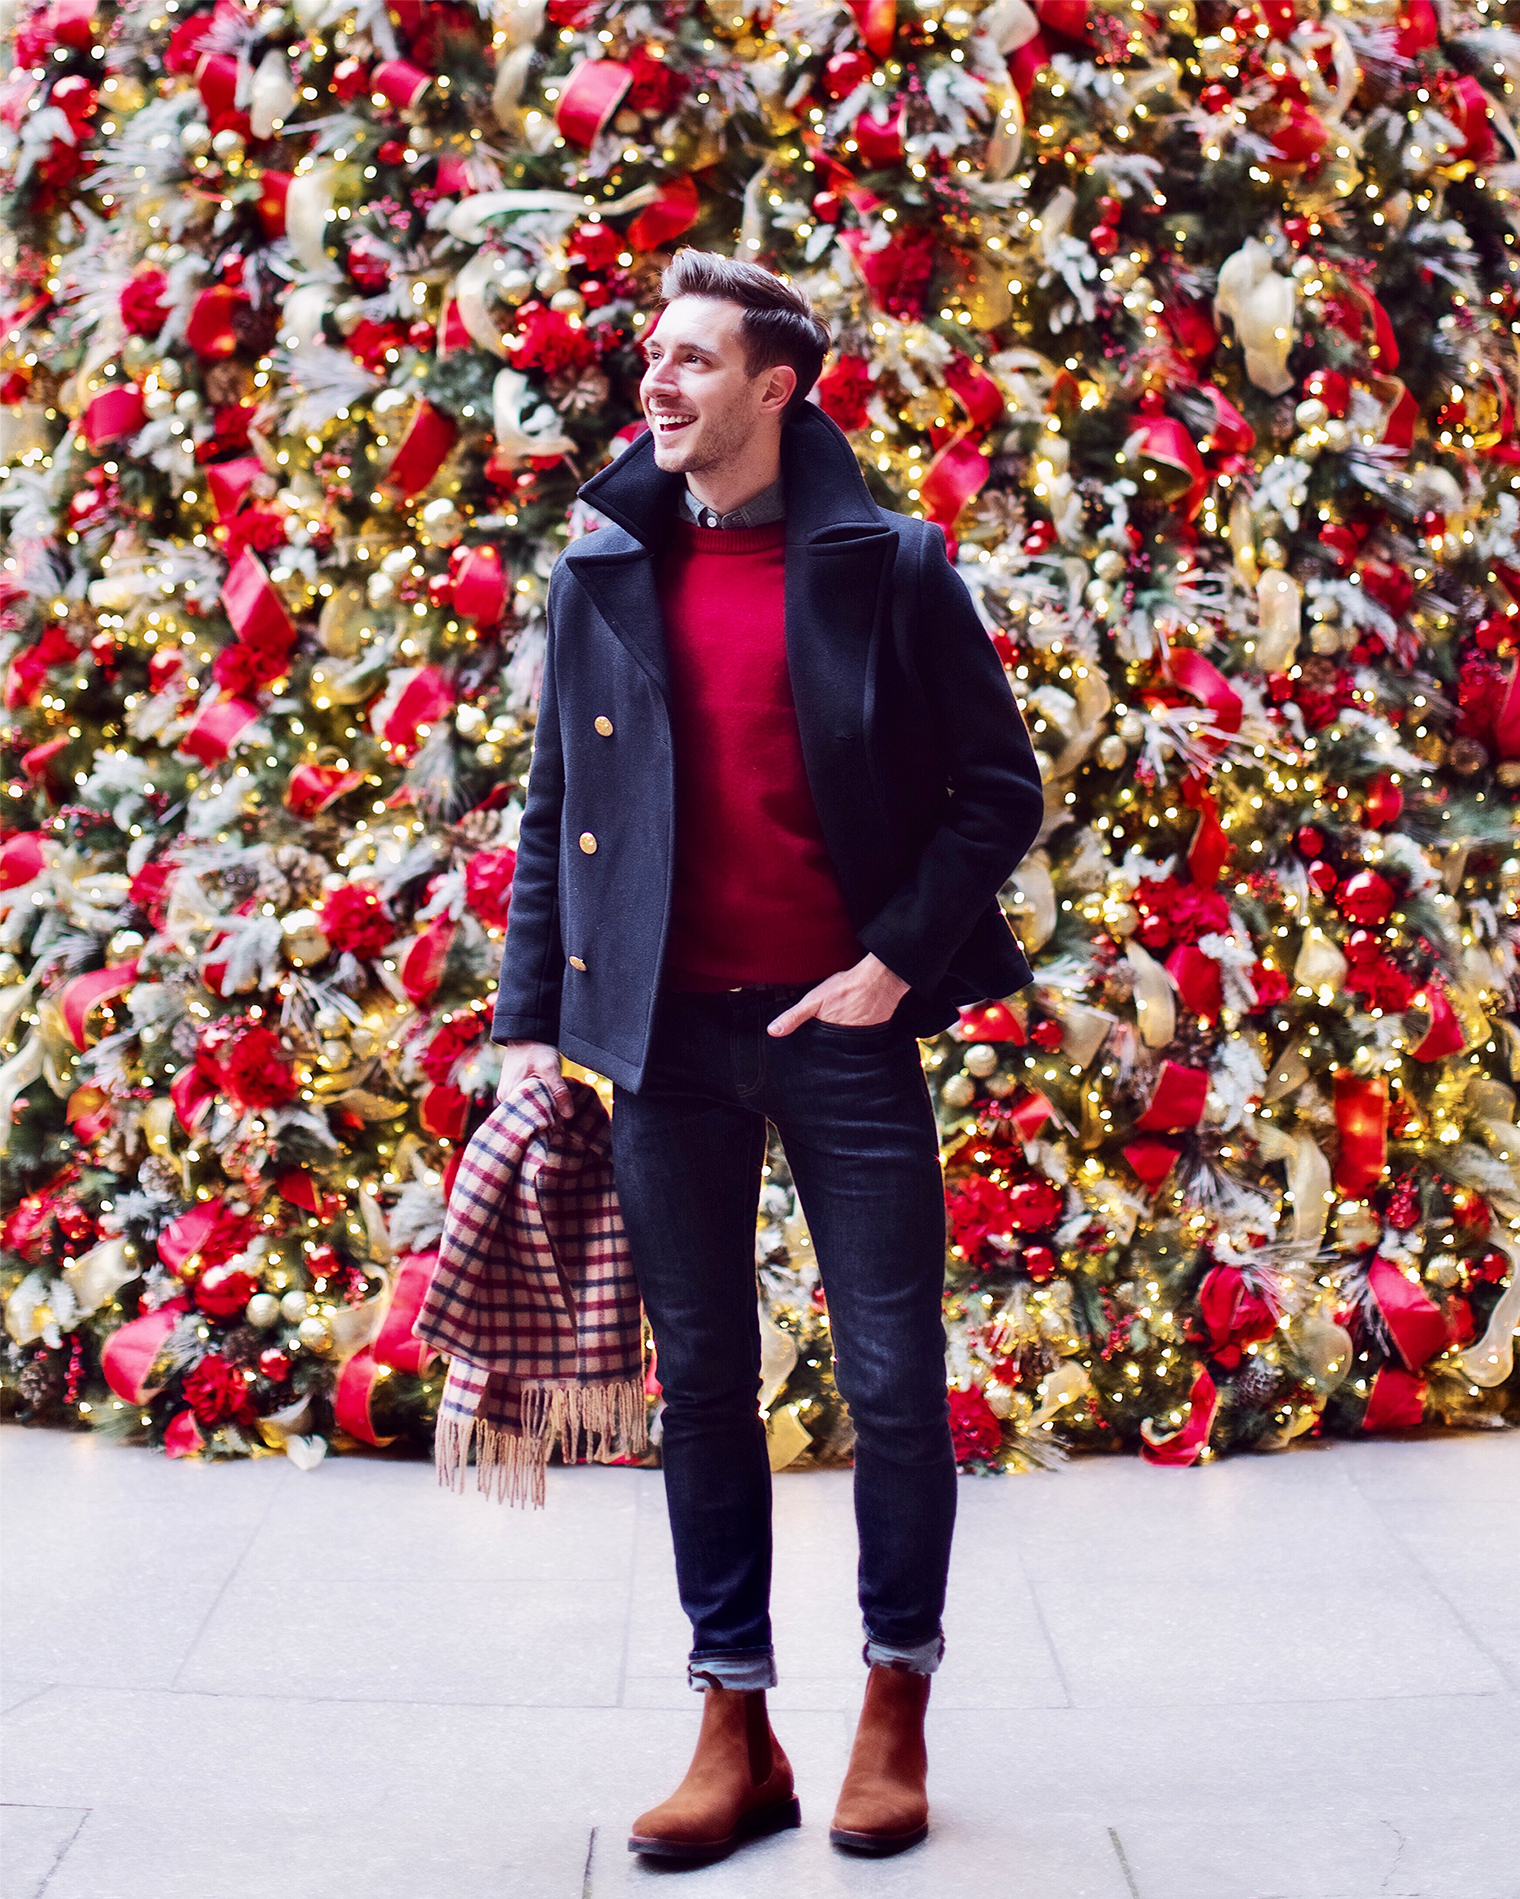 With our selection of men's Christmas party attire above, you'll effortlessly (and stylishly) be a cut above the rest of your coworkers. Whether your Christmas party is a casual, smart casual or smart event, these looks should have your Xmas party outfit covered.